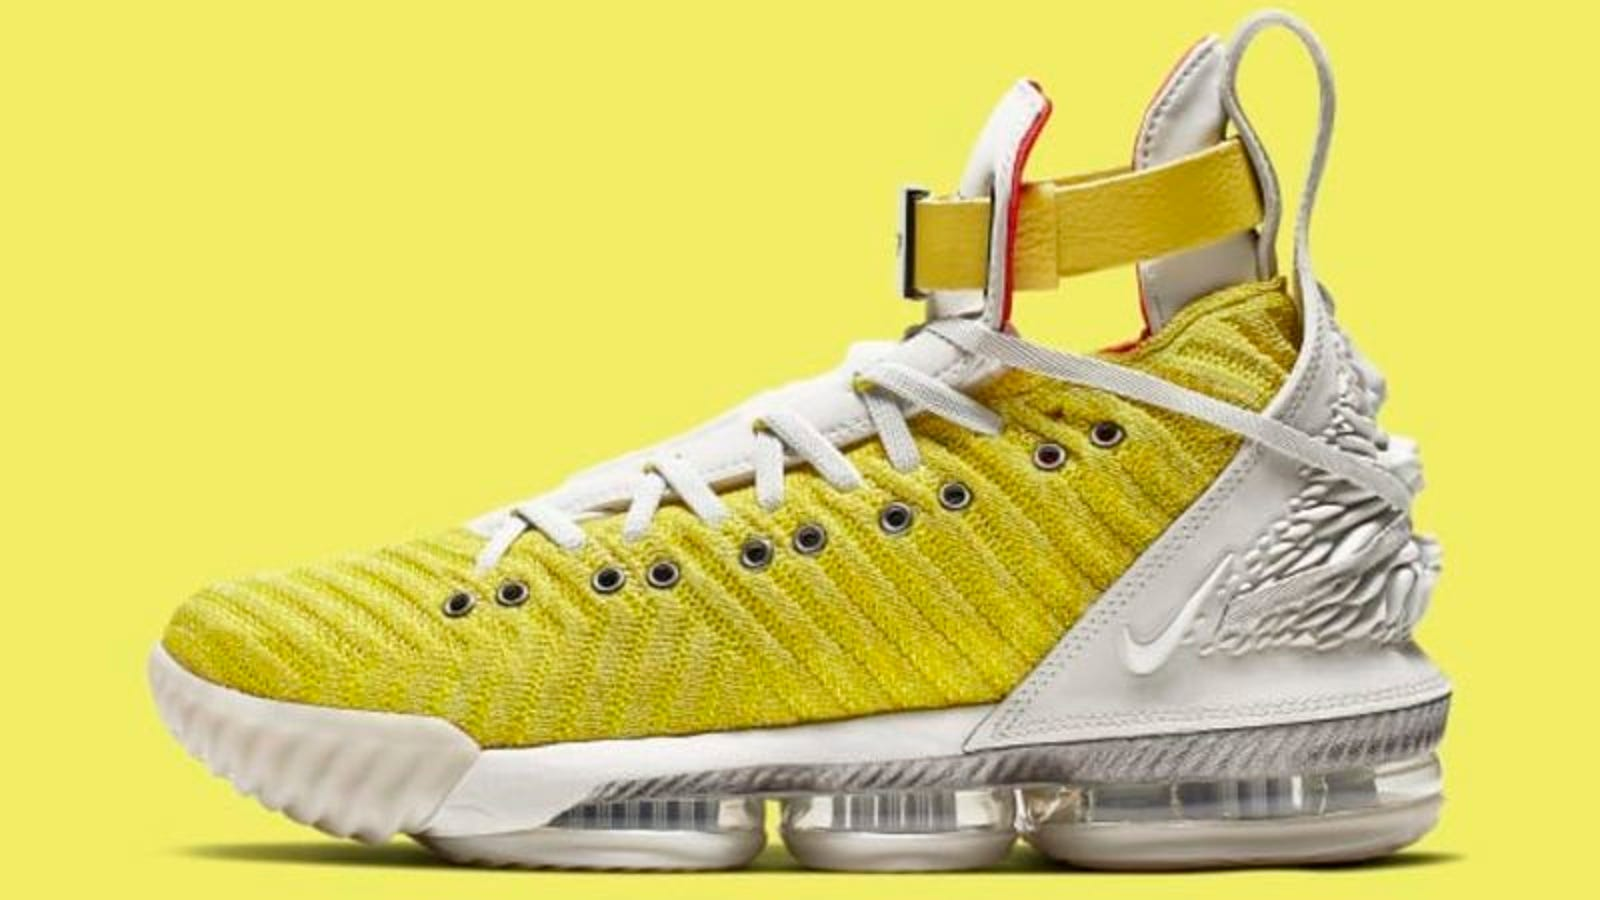 2a976a7419b3 The HFR x LeBron 16 Nikes Are Back in Citron